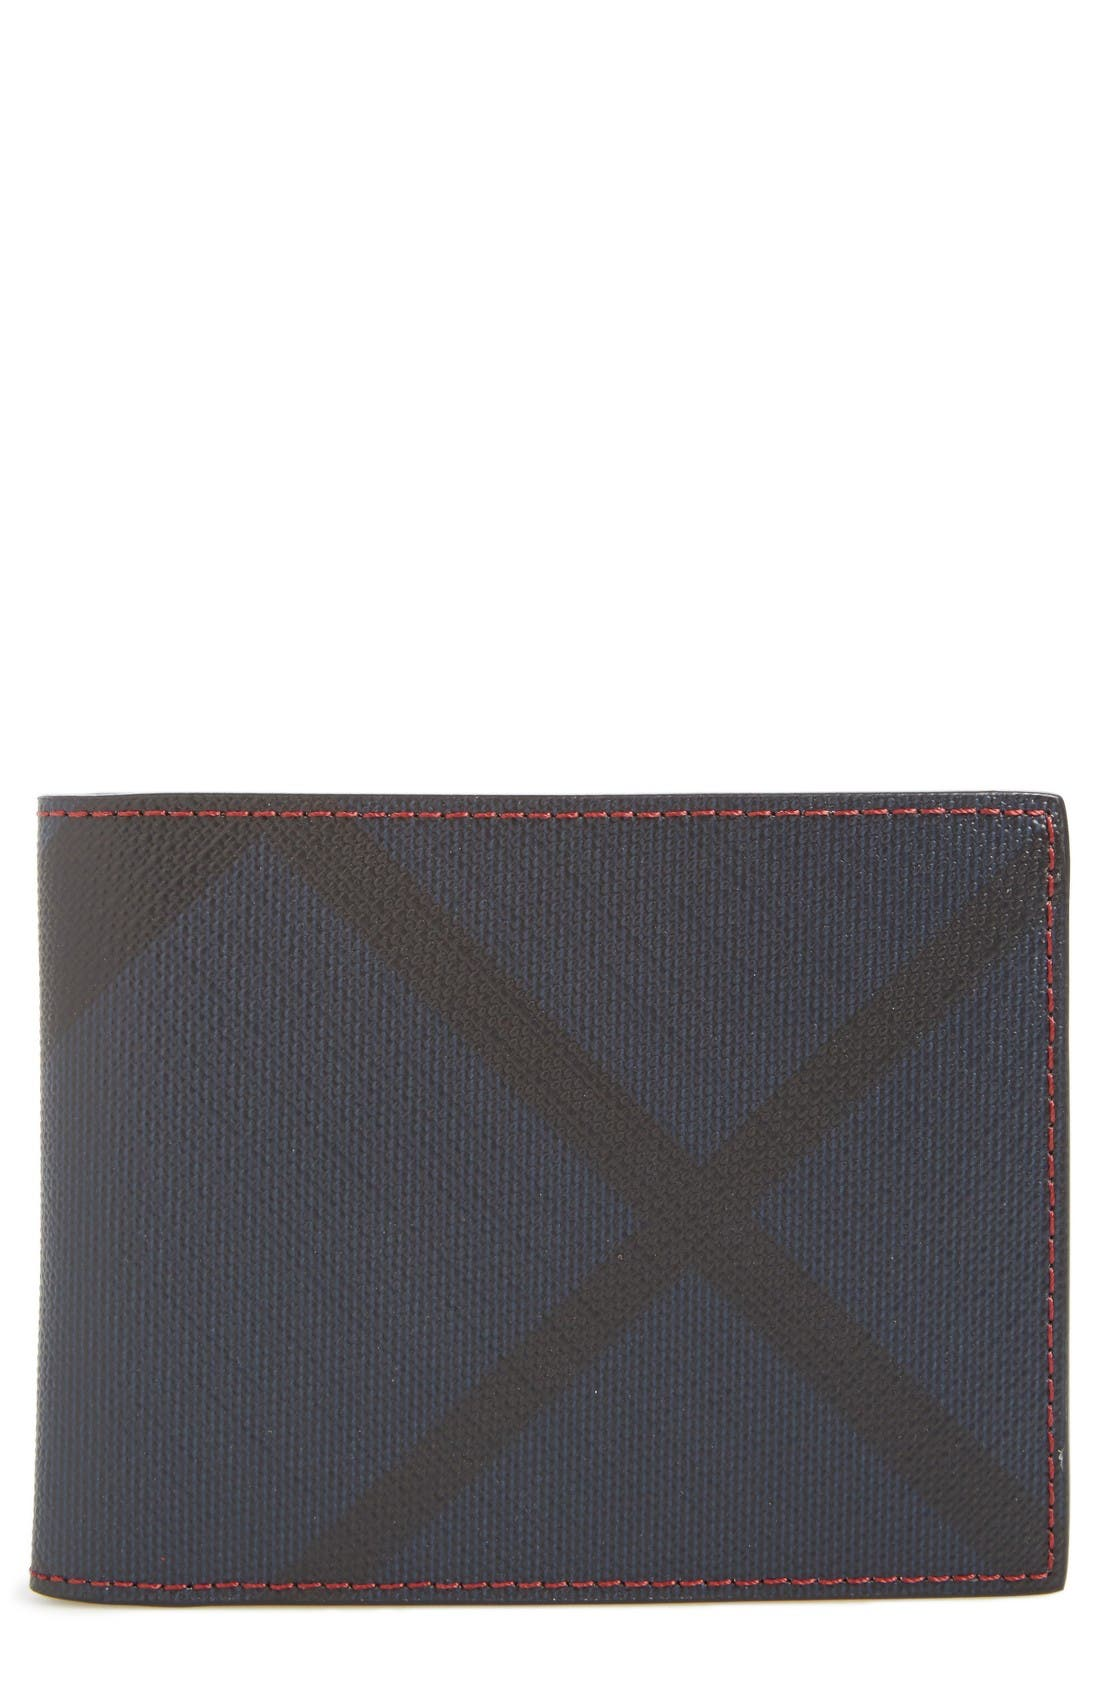 Sandon Wallet,                             Main thumbnail 1, color,                             Parade Red